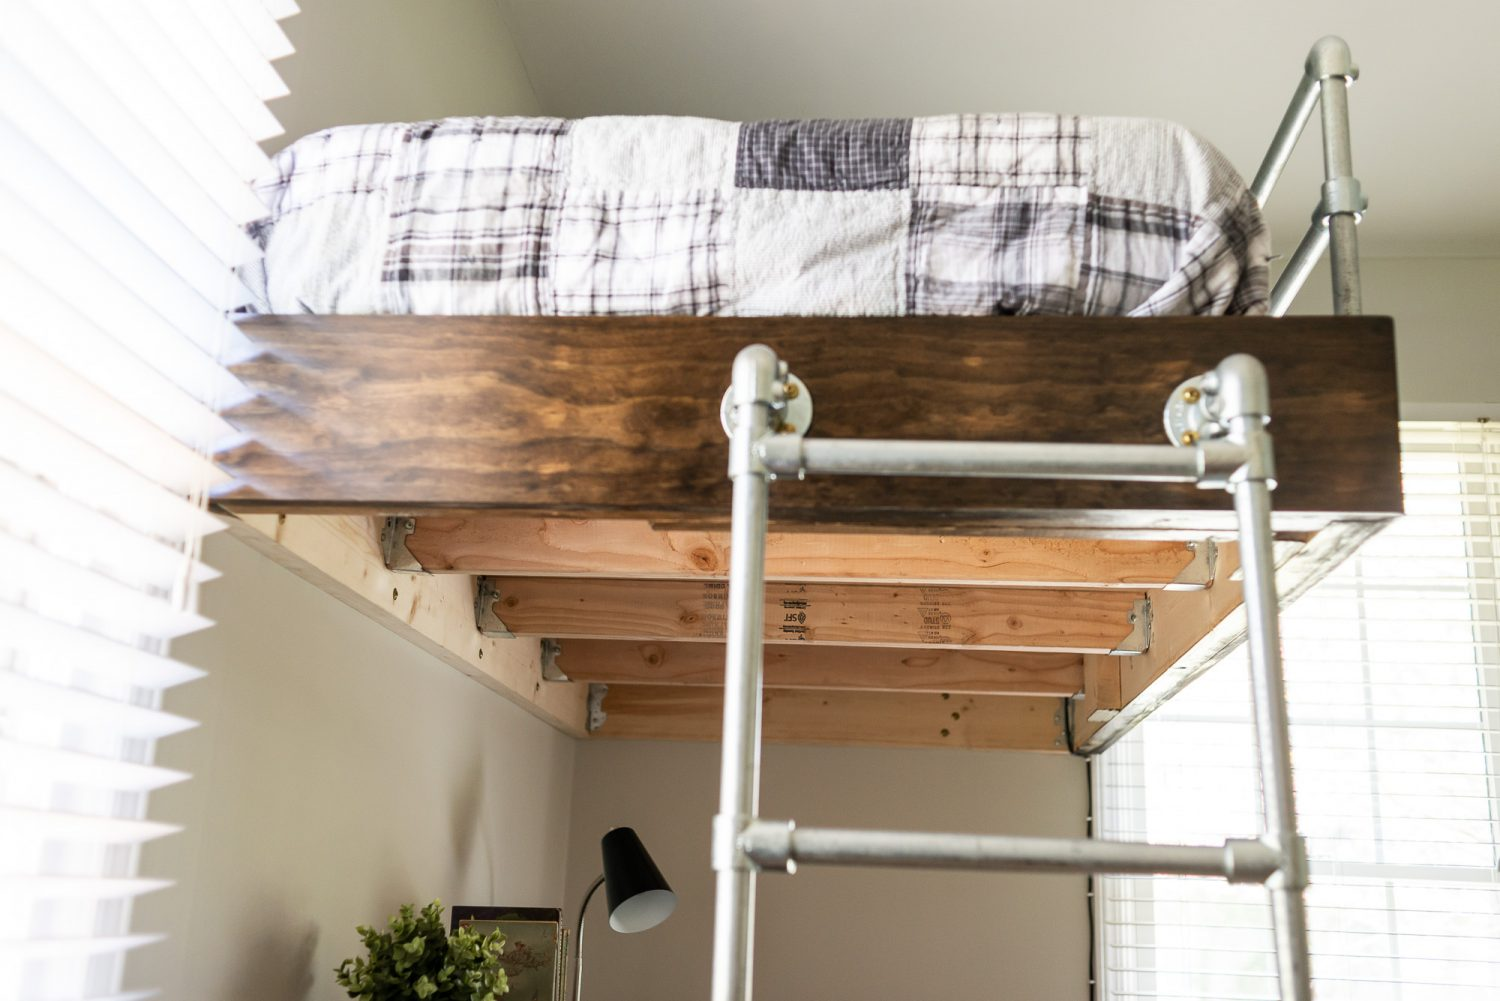 Bed Loft Diy Loft Bed For Boy 39s Room Strong And Simple To Build